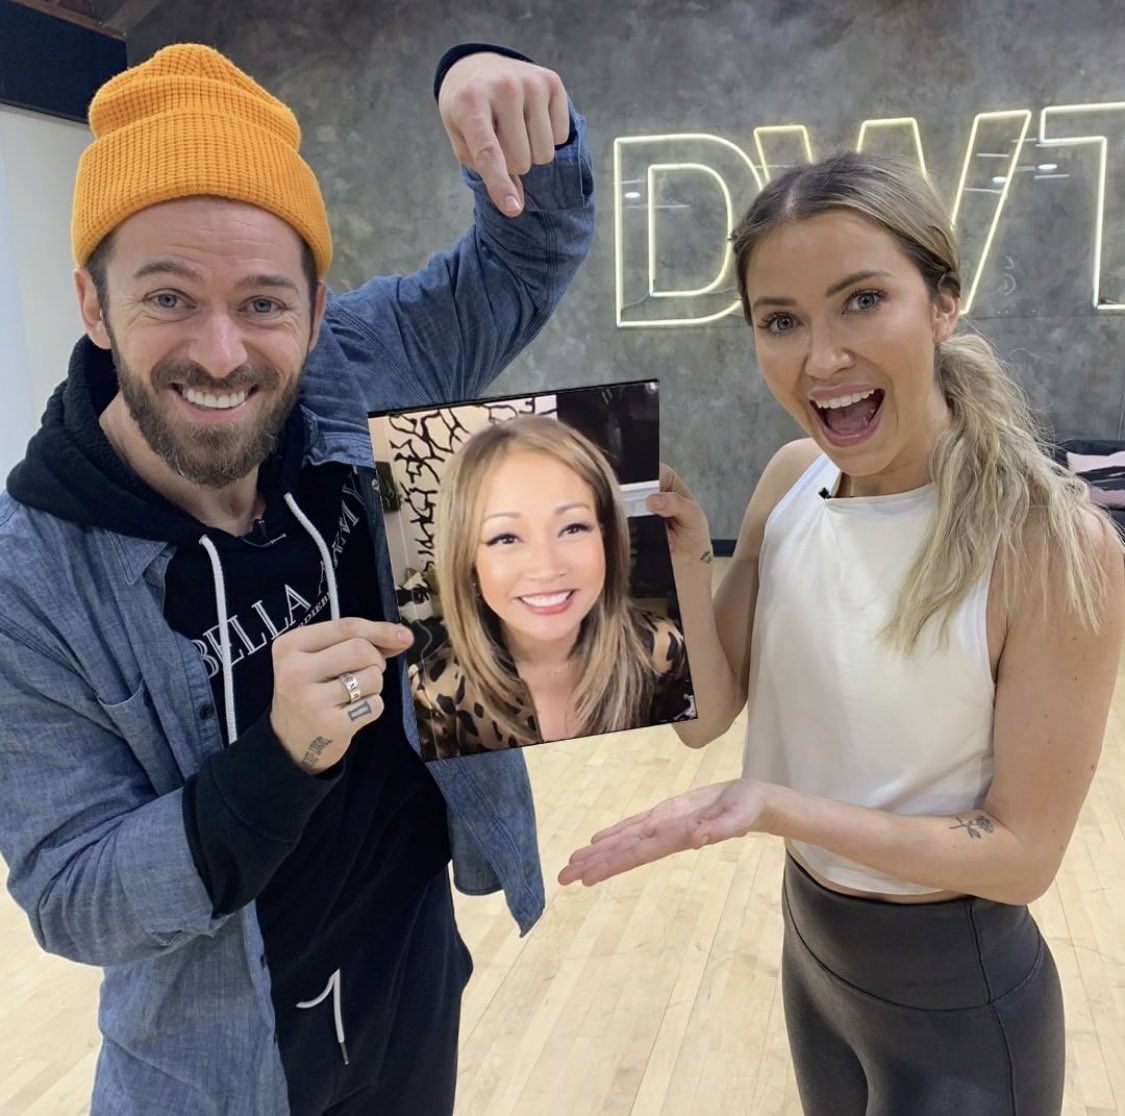 And I also worked with these two! We had a great time! Even though I had to do it from home. #fluseason @DancingABC @artemchigvintse @kaitlynbristowe